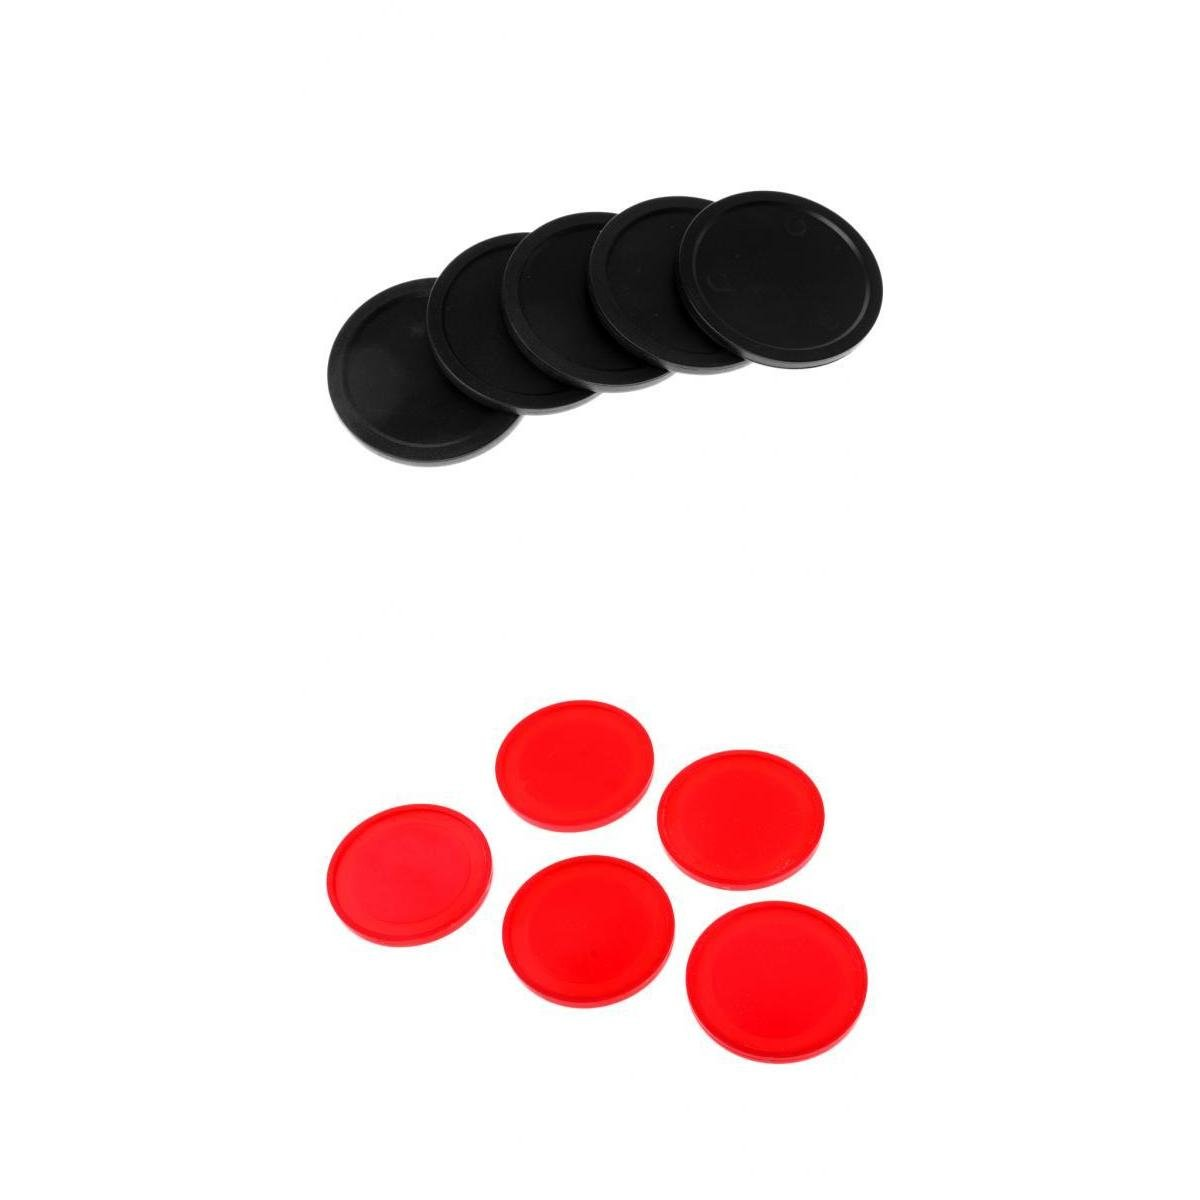 MagiDeal 10 Pieces Air Hockey Pucks for Full Size Air Hockey Tables Red Black 60mm 50mm non-brand